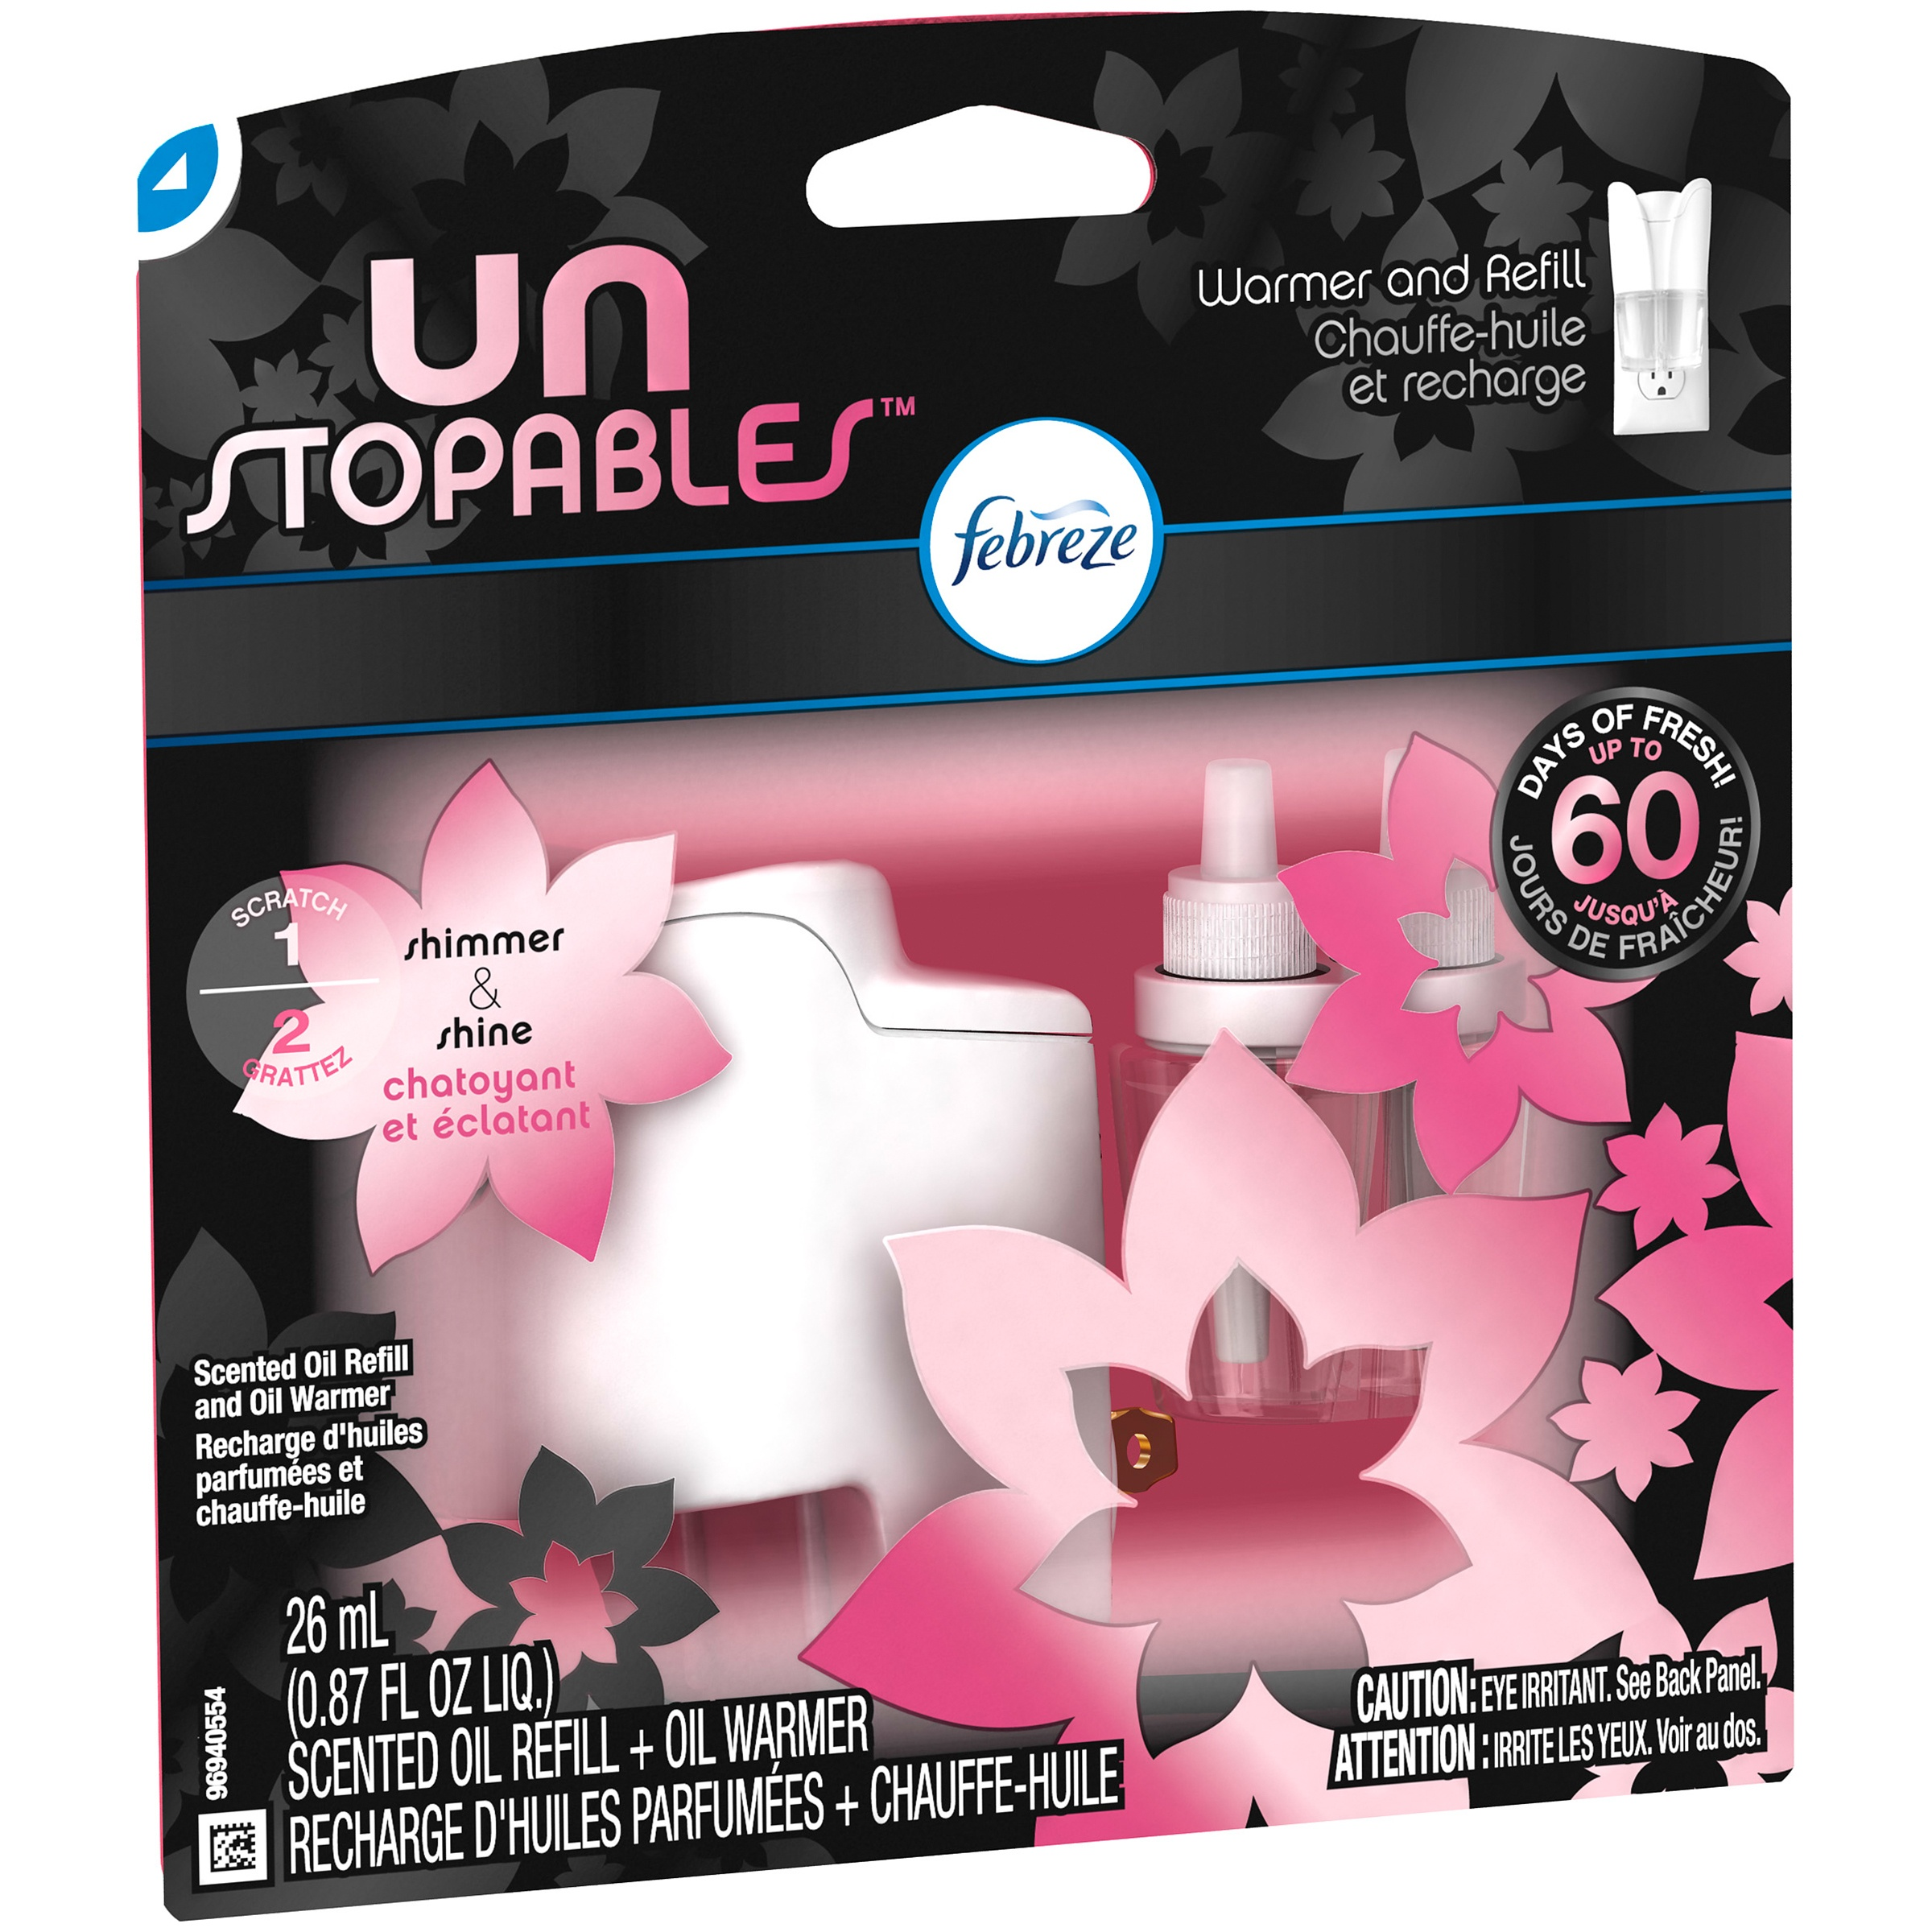 Unstopables Shimmer Pluggable Scented Oil Refill with Warmer Air Freshener (1 Count, 0.87 Oz)